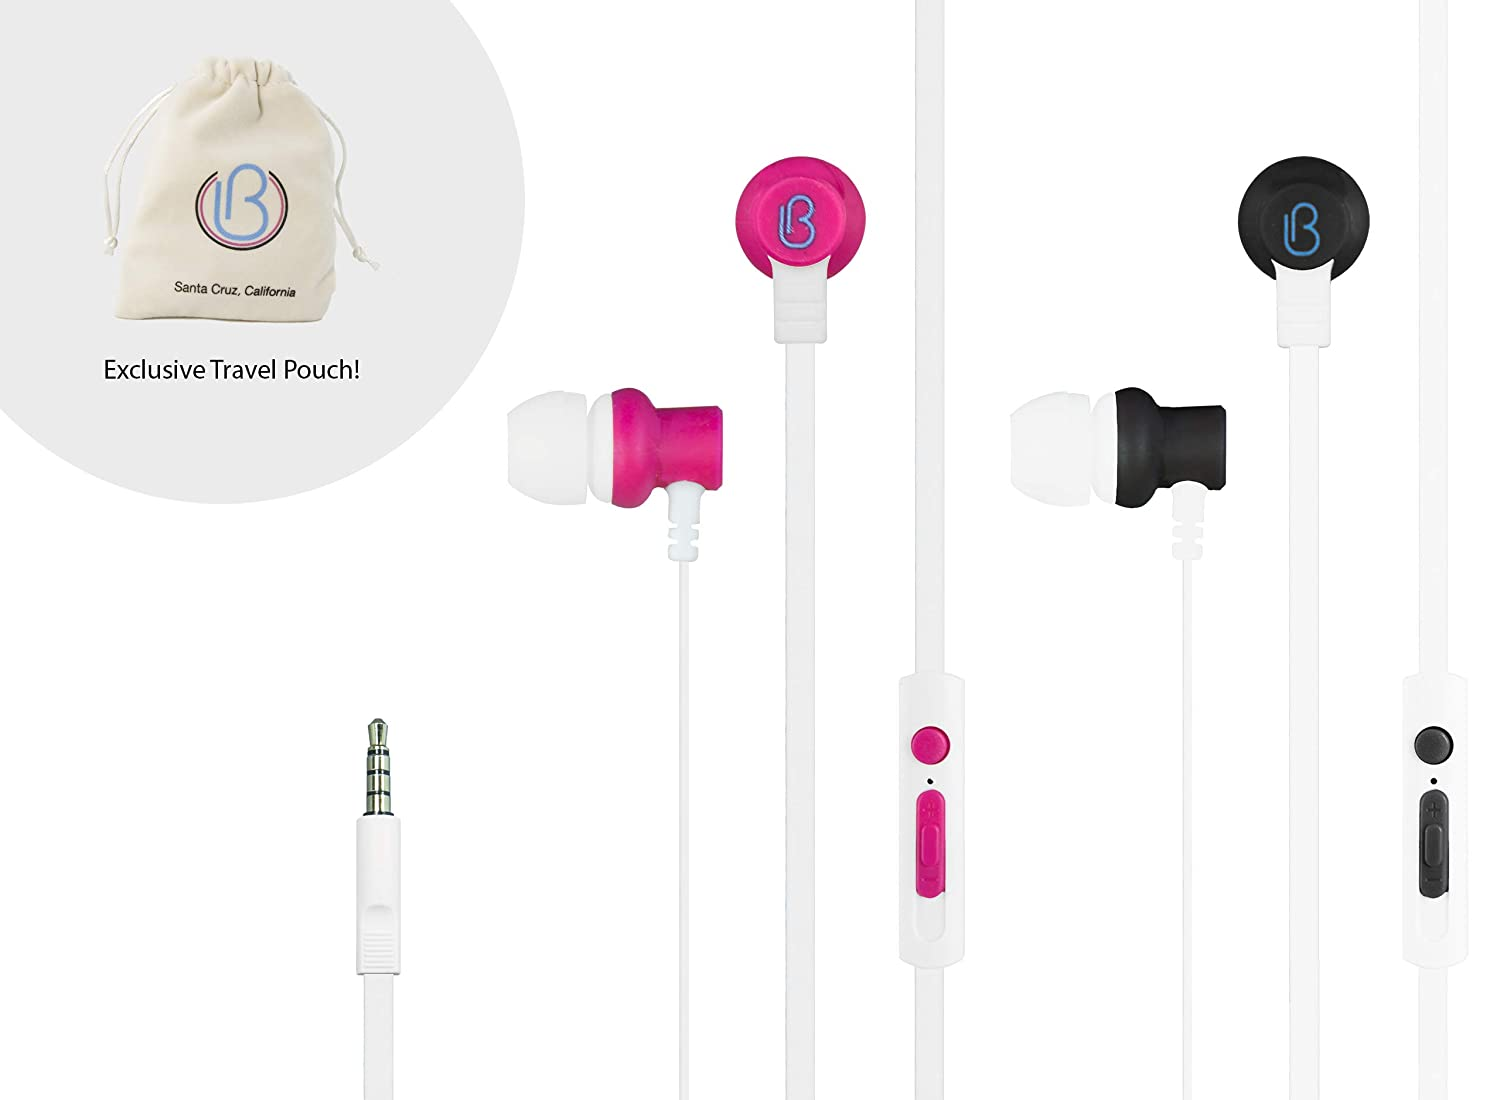 New loveBuds – Shared Two Person Earphones Earbuds Headphones, with Separate Individual Volume Controls and Microphones. No splitters Required. Now with an Exclusive Travel Pouch